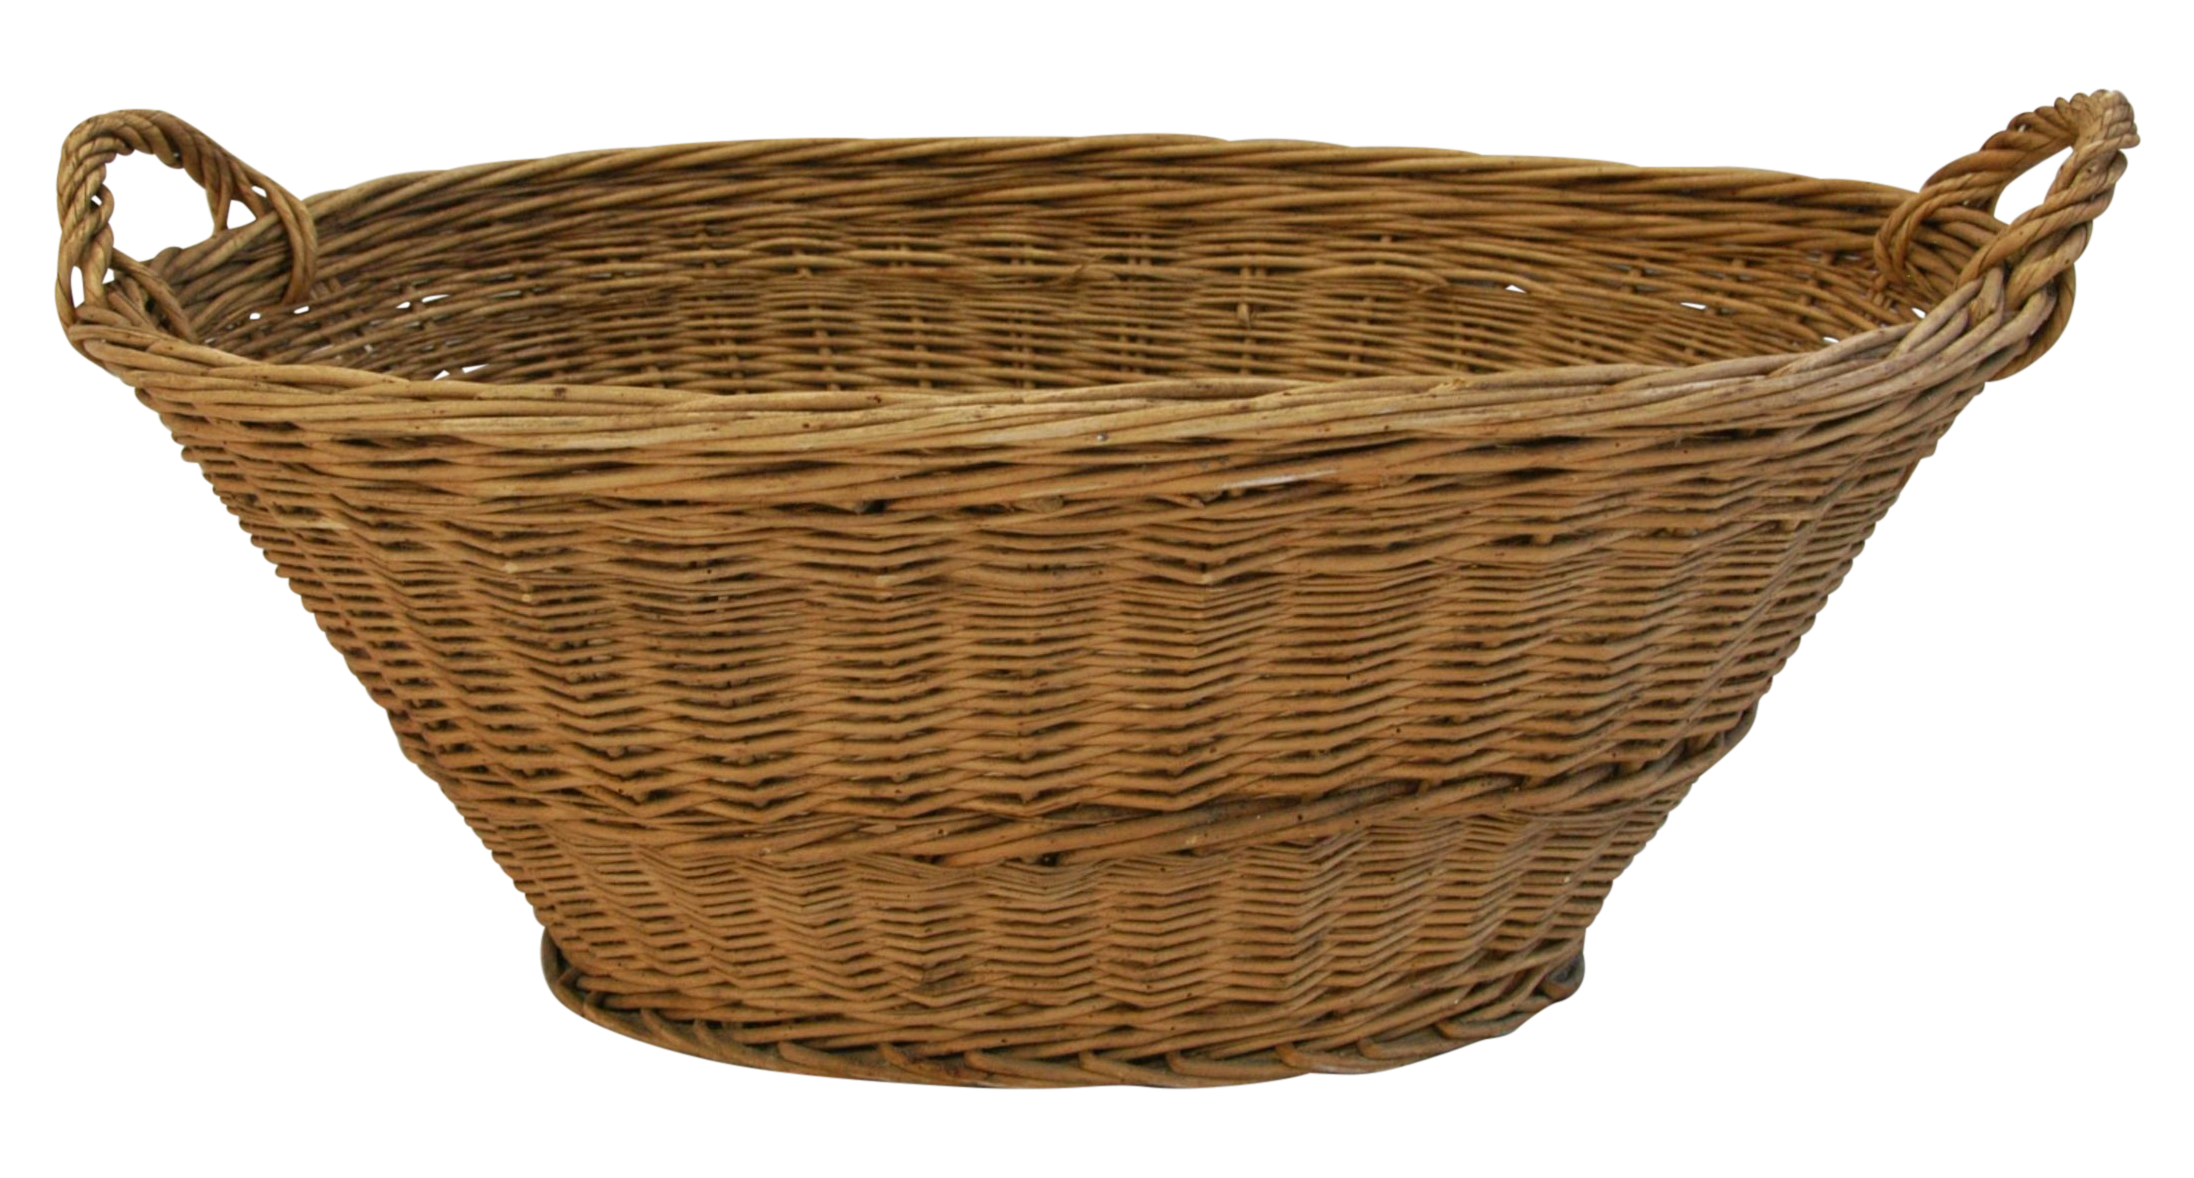 Wicker Basket Png Hdpng.com 2194 - Wicker Basket, Transparent background PNG HD thumbnail